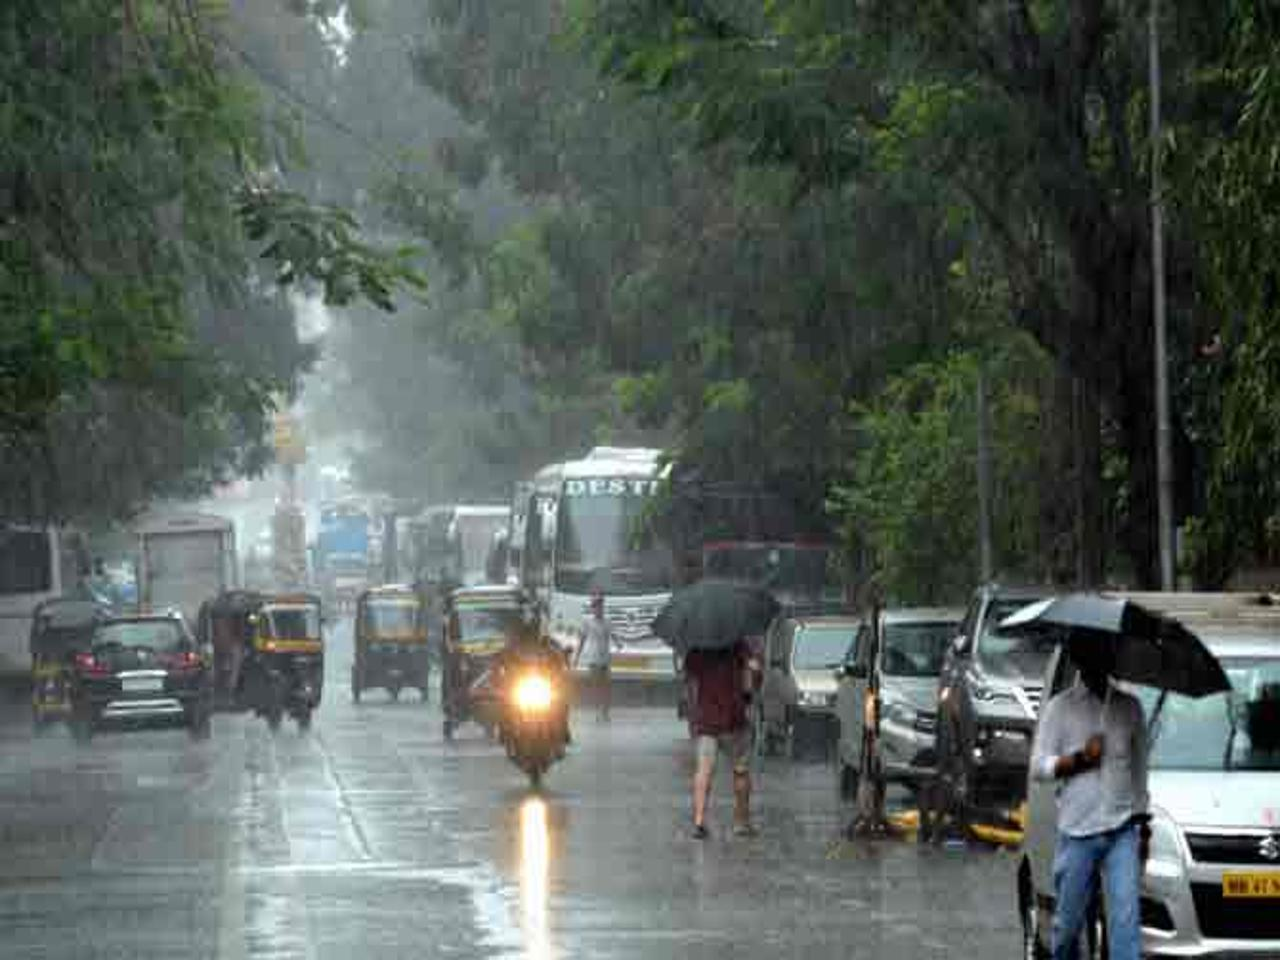 Bombay asks residents to stay home due to monsoon rains